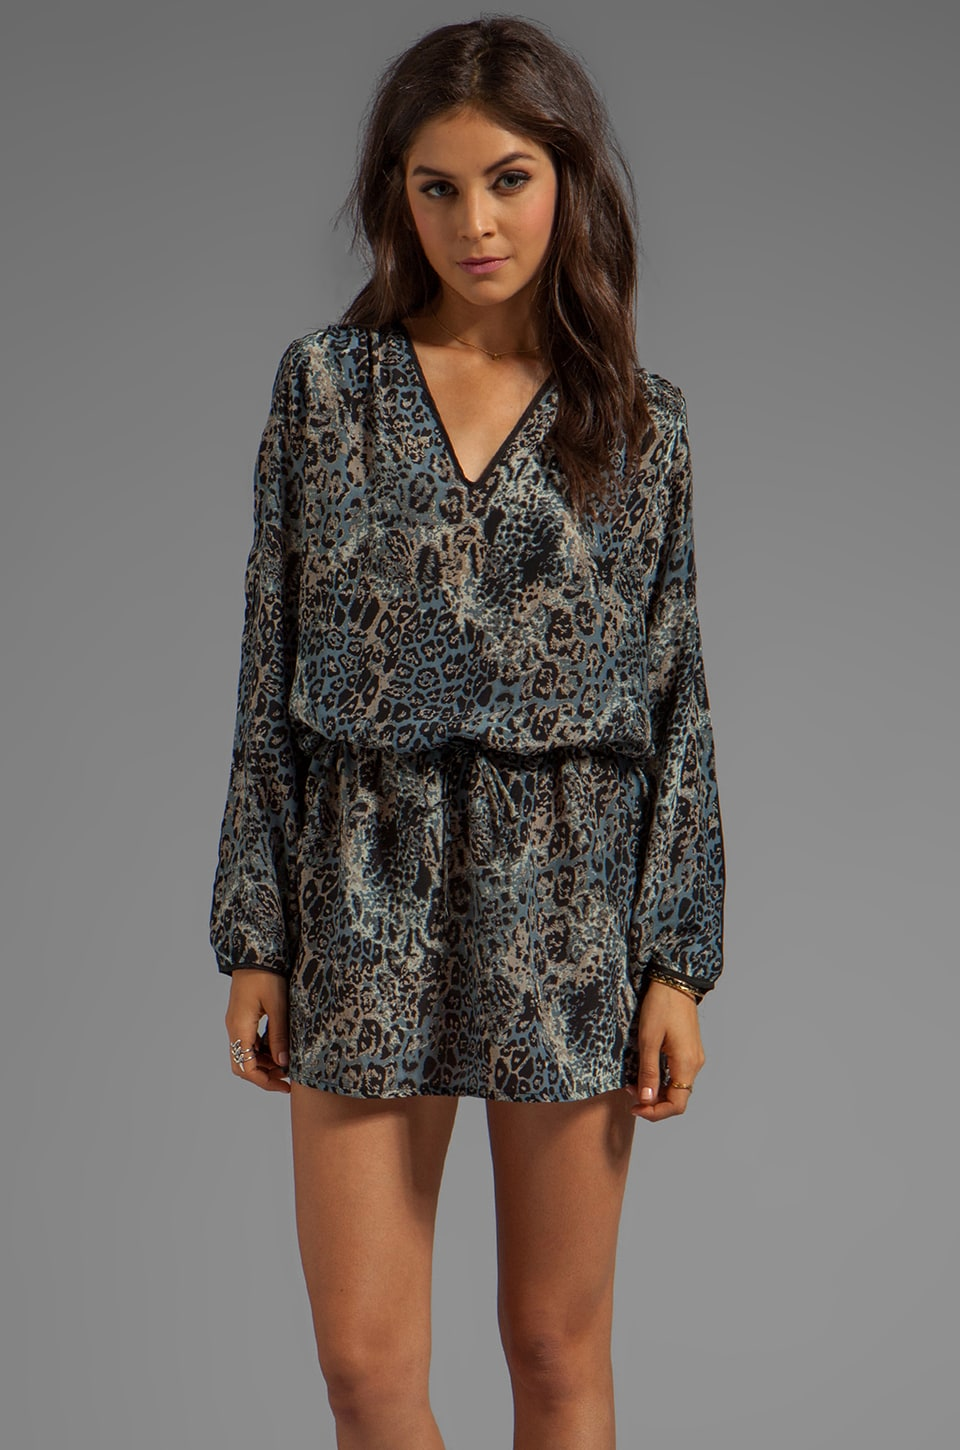 Tolani Jessica Dress Print in Animal